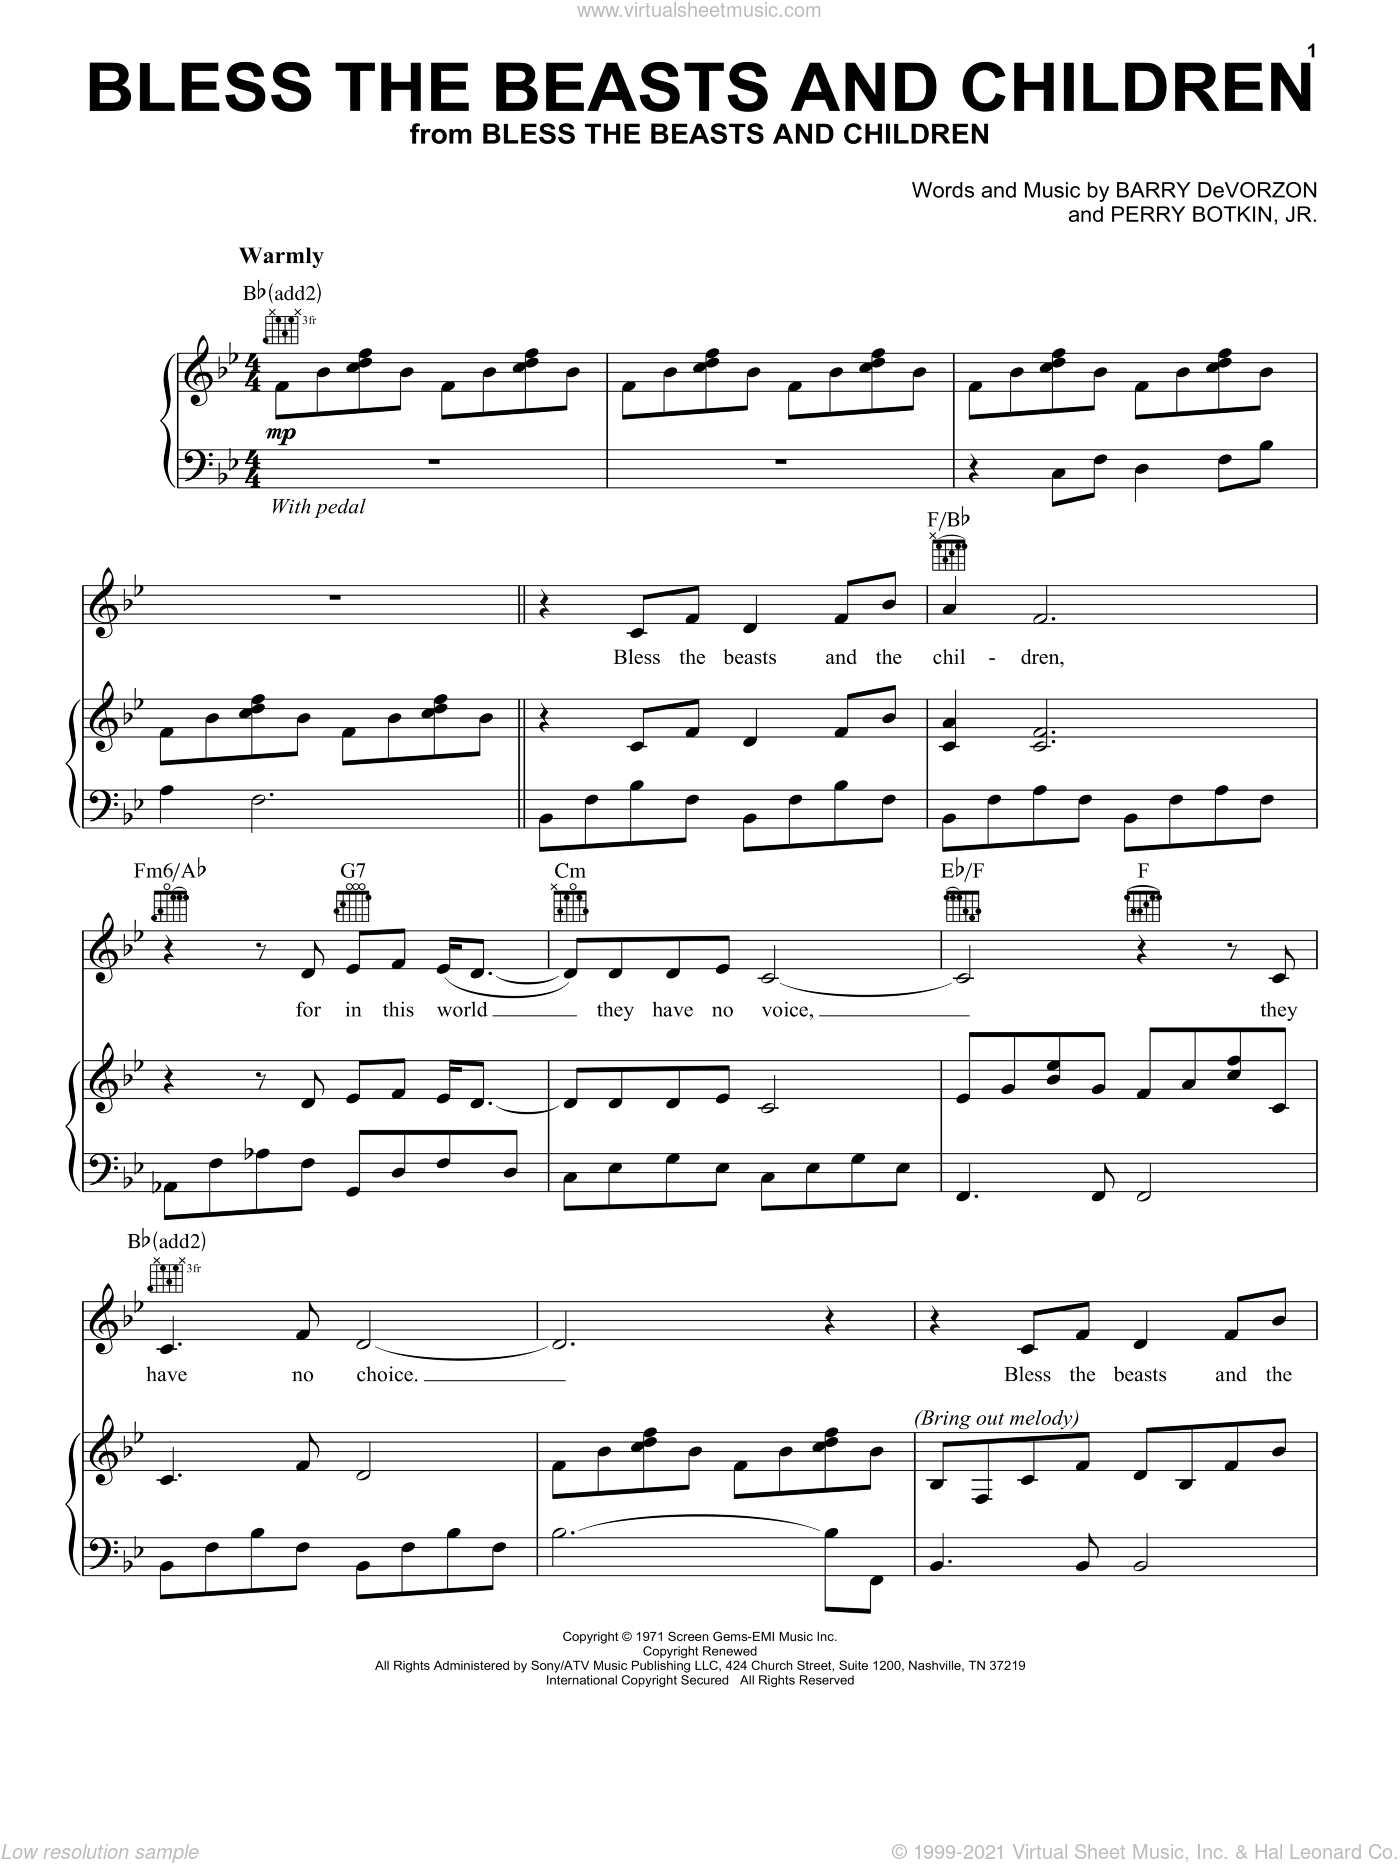 Bless The Beasts And Children sheet music for voice, piano or guitar by Carpenters, Four Non Blondes, Shirley Bassey, Barry DeVorzon and Perry Botkin, Jr., intermediate skill level